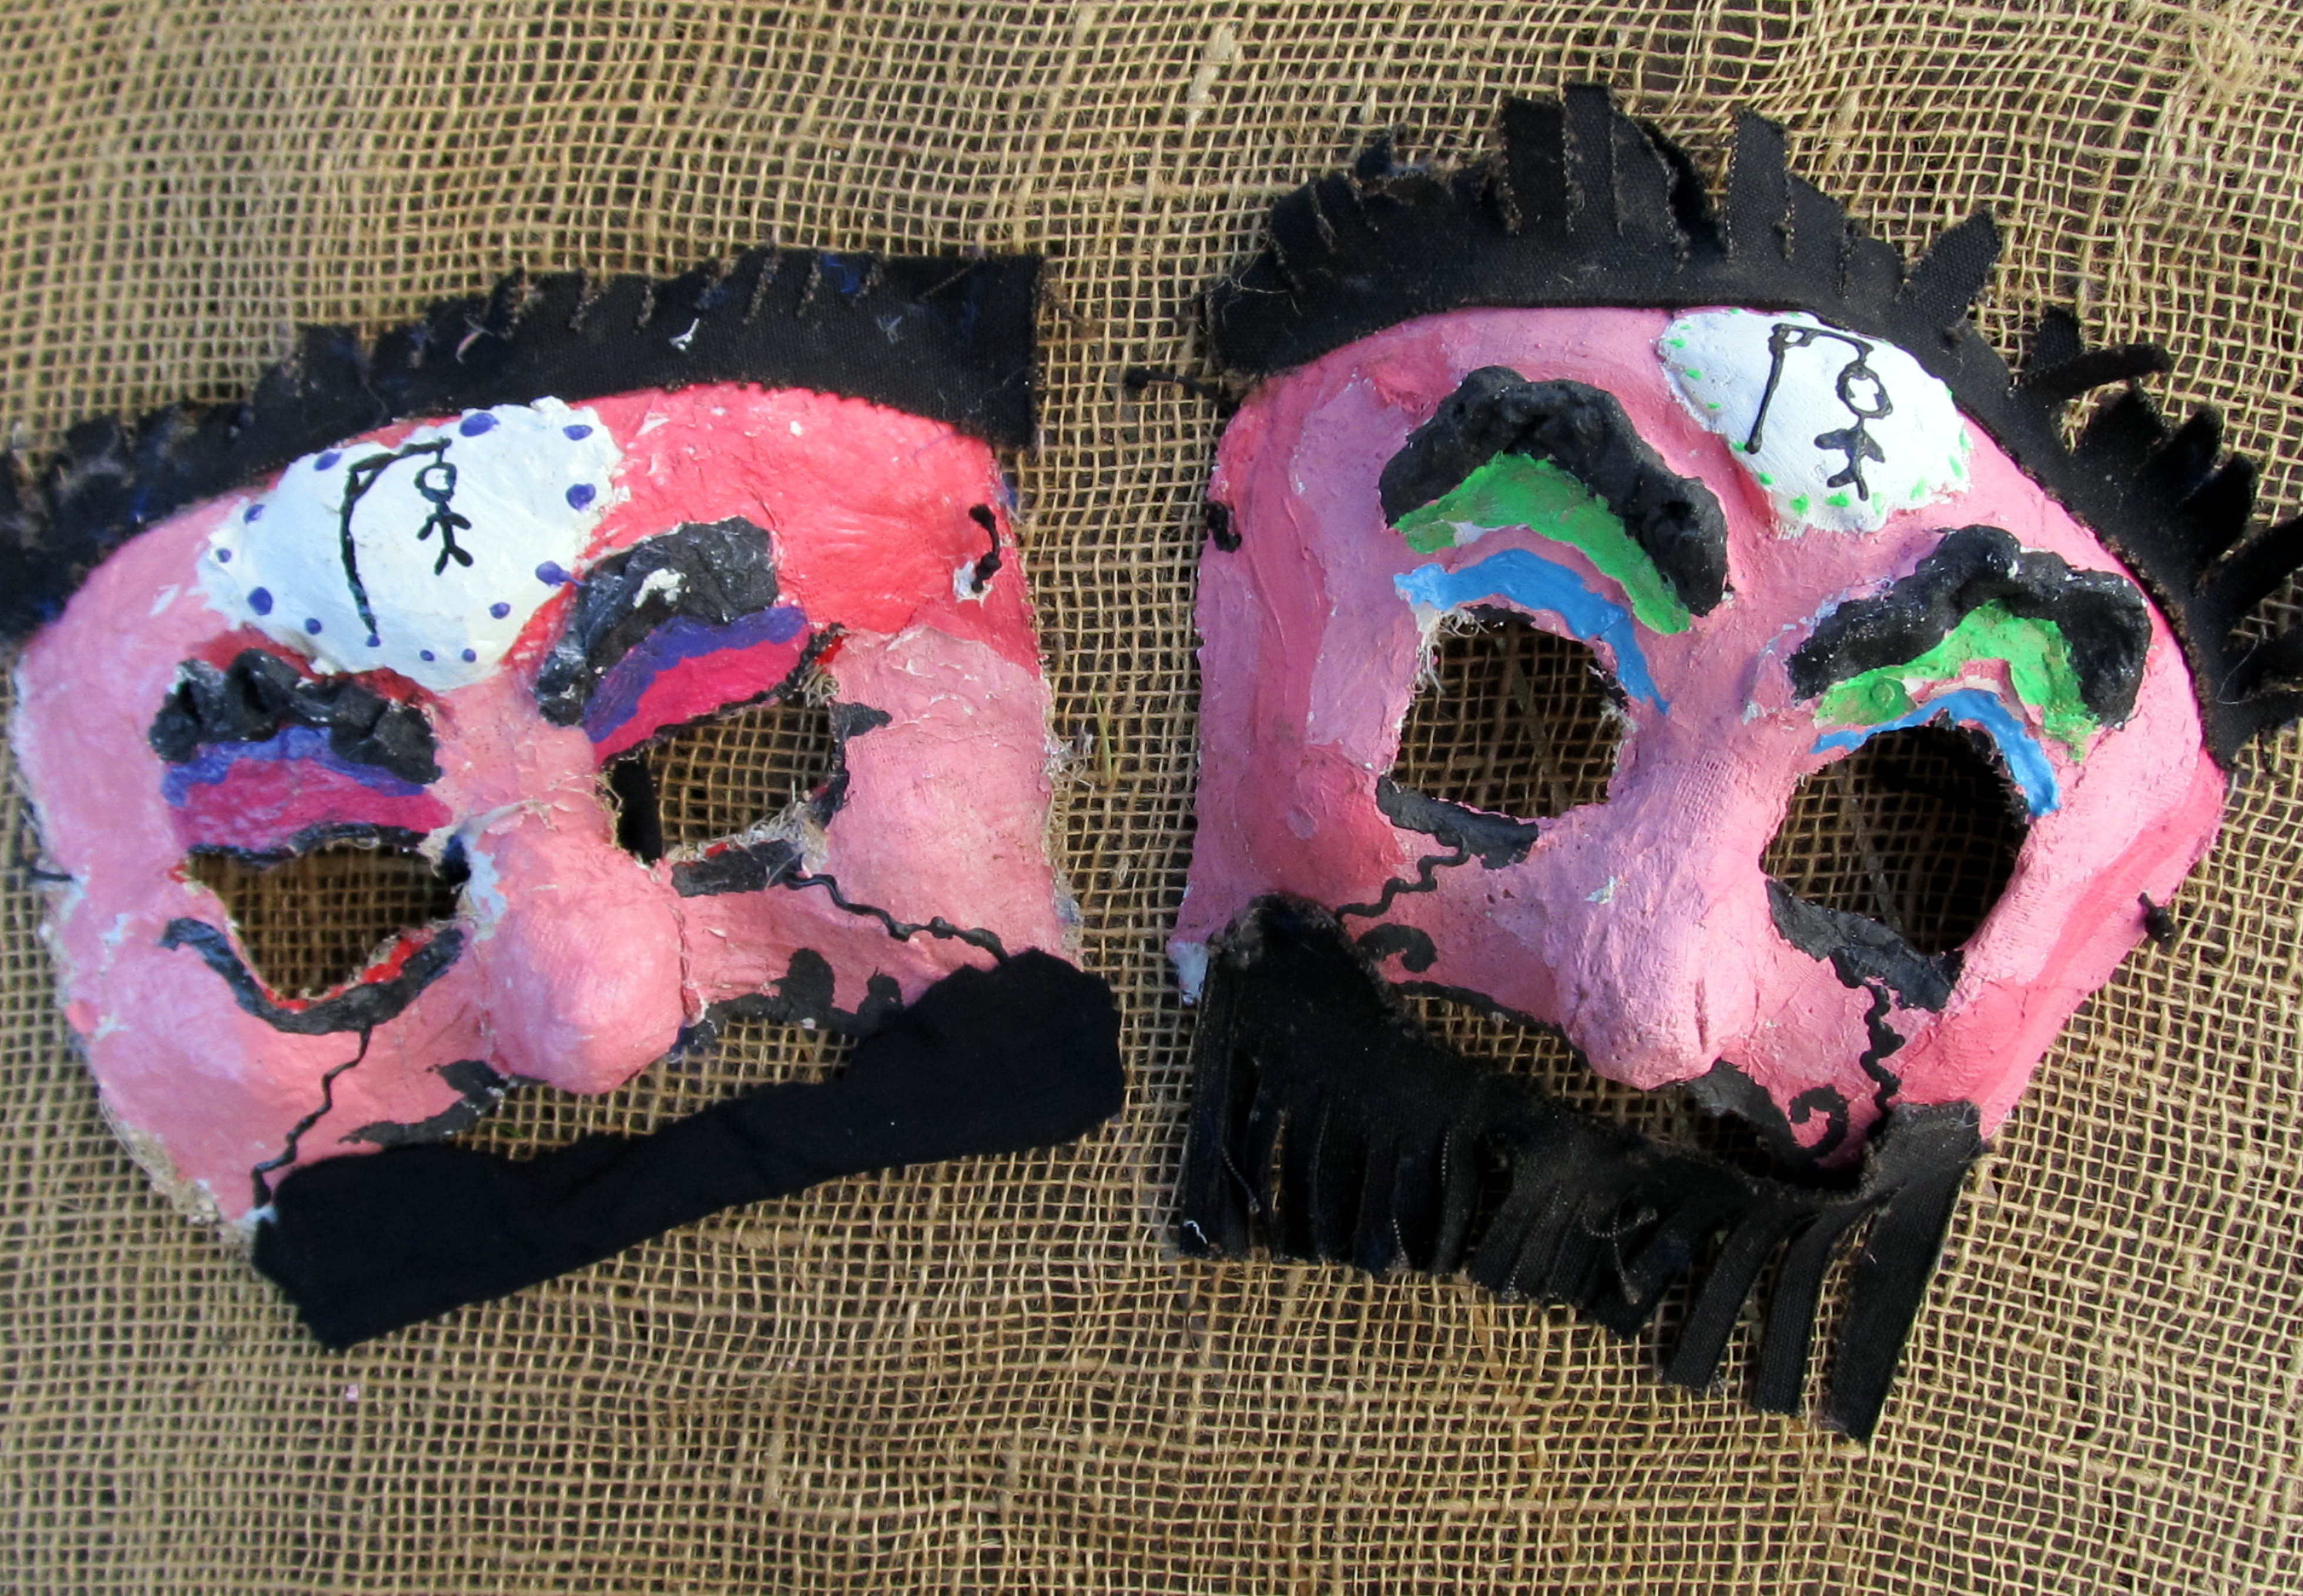 Two faces of Haman: Why do we like trying them on? (Masks and photo by Edmon J. Rodman)